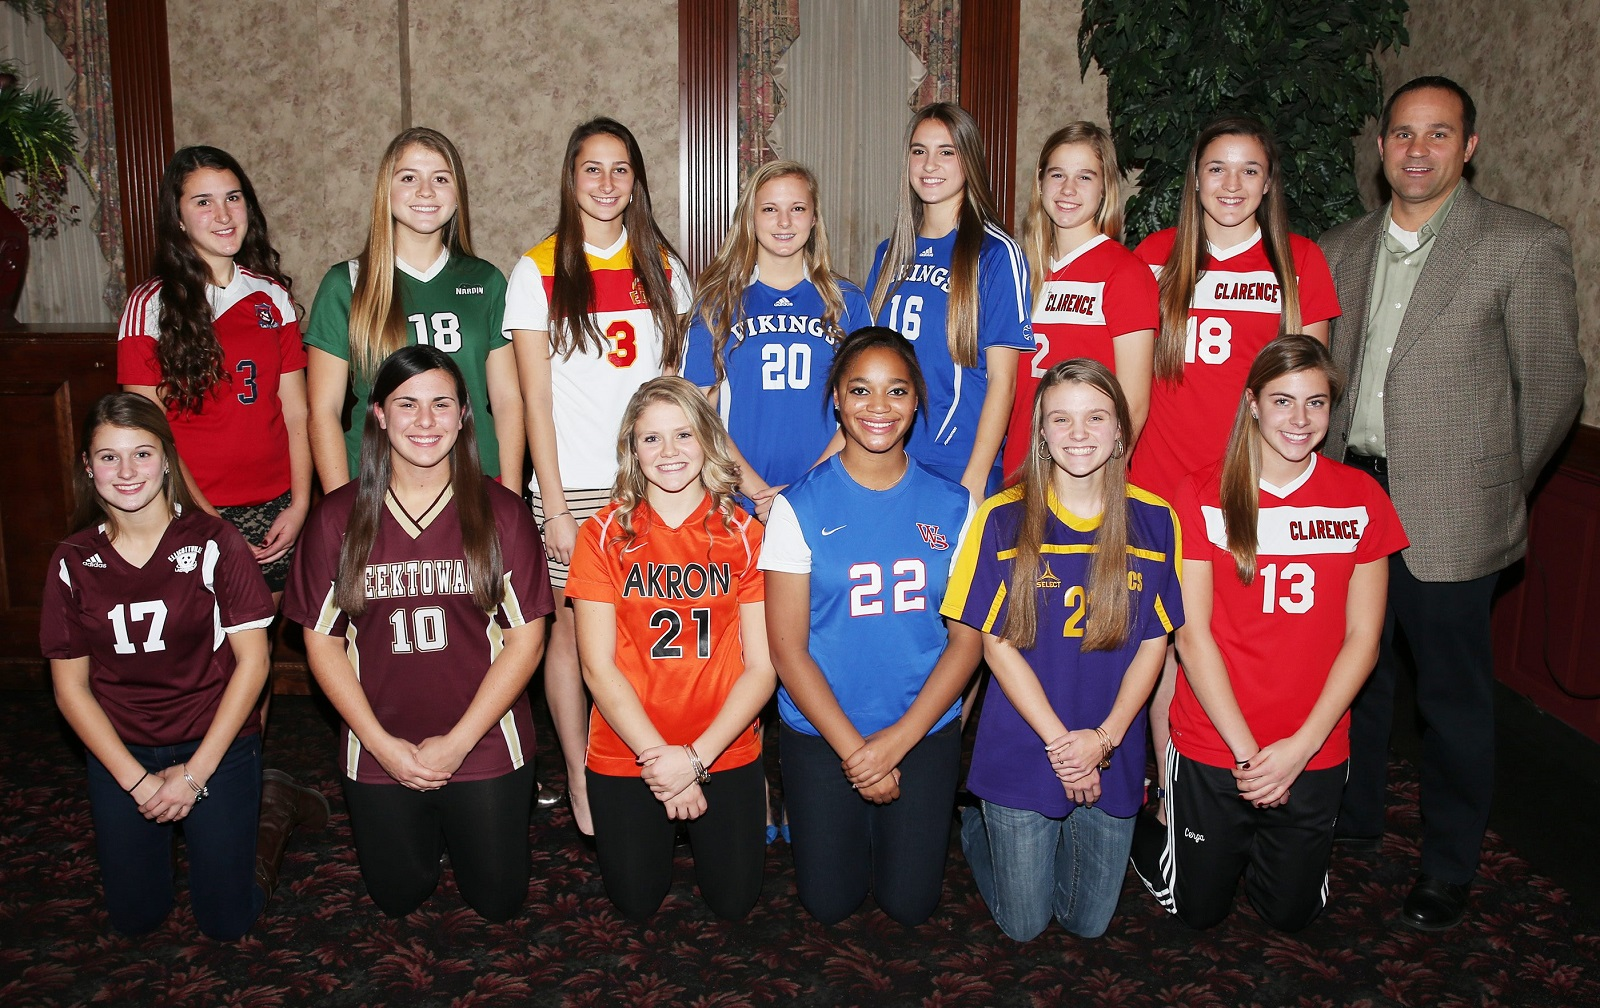 All Western NY soccer. Back row from left to right Morgan Zlockie, Ellicottville; Emma Gervase, Nardin; Marissa Birzon, Williamsville East; Marcy Barberic, Grand Island; Madisyn Pezzino, Grand Island; Shannon Carr, Clarence; Tom Furminger, Clarence head coach and coach of the year. Front row, from left to right, Lauren Testa, North Tonawanda; Megan Dulniak, Cheektowaga; Cailin Regan, Akron; Monique Green, Williamsville South; Olivia Schmidt, Holland; and Sydney Cerza, Clarence. (James P. McCoy/Buffalo News)